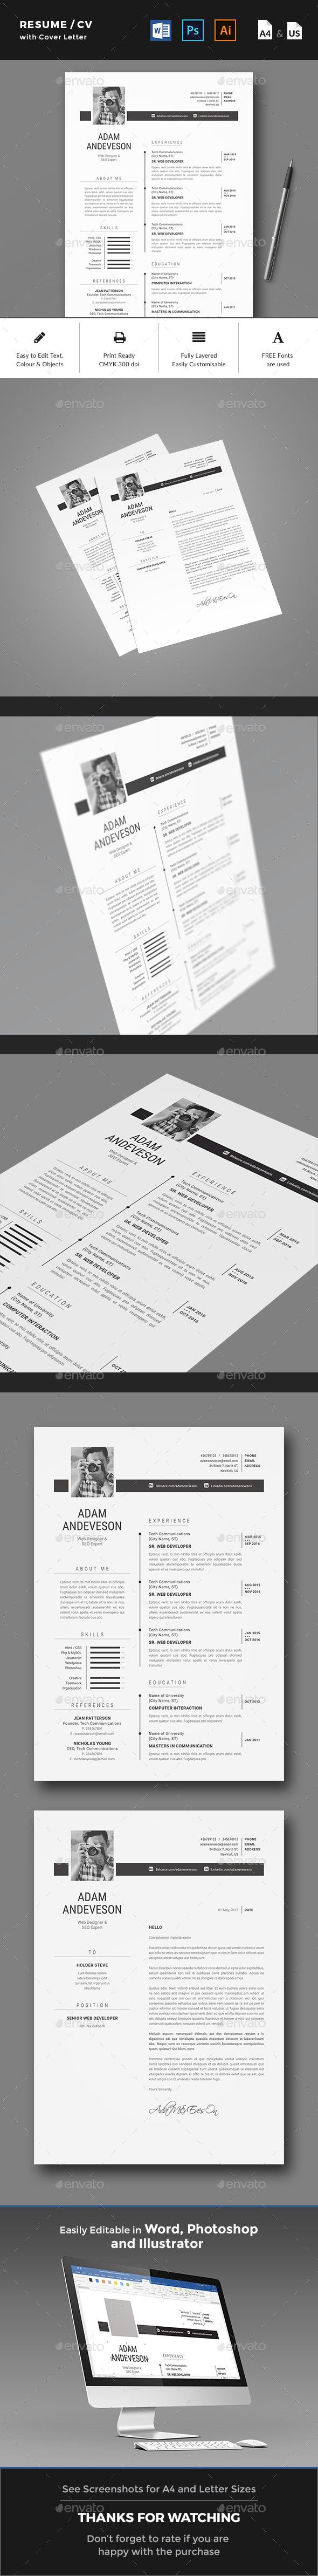 Resume Cv By Yellowkyte Resume Cv Template A Professional And